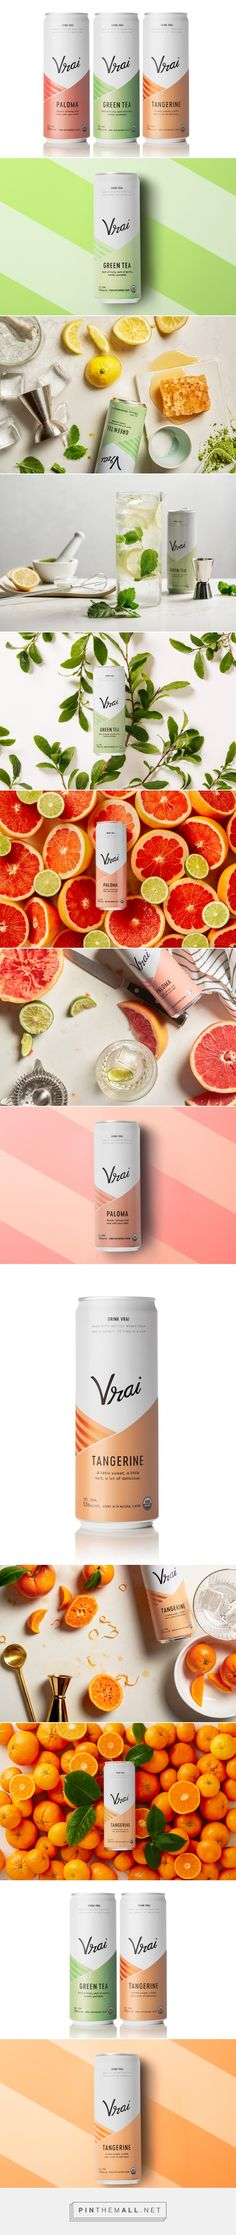 Vrai Vodka Cocktails - Packaging of the World - Creative Package Design Gallery - http://www.packagingoftheworld.com/2017/07/vrai-vodka-cocktails.html